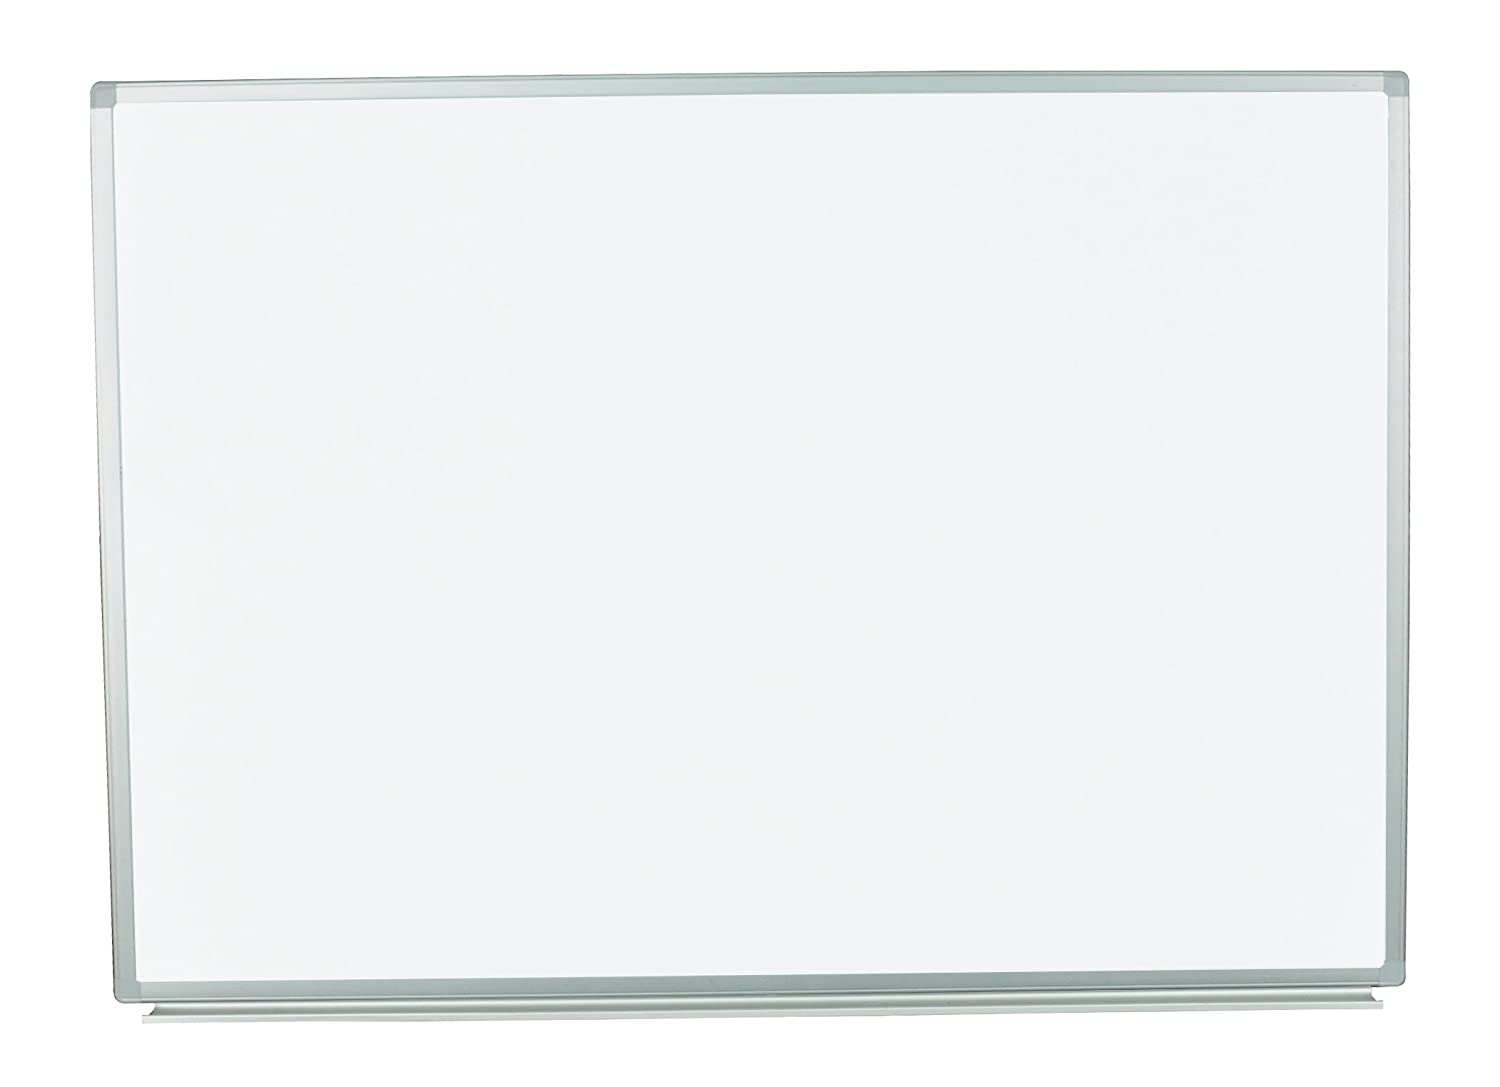 LUXOR WB4836W Wall-Mounted whiteboards, 48